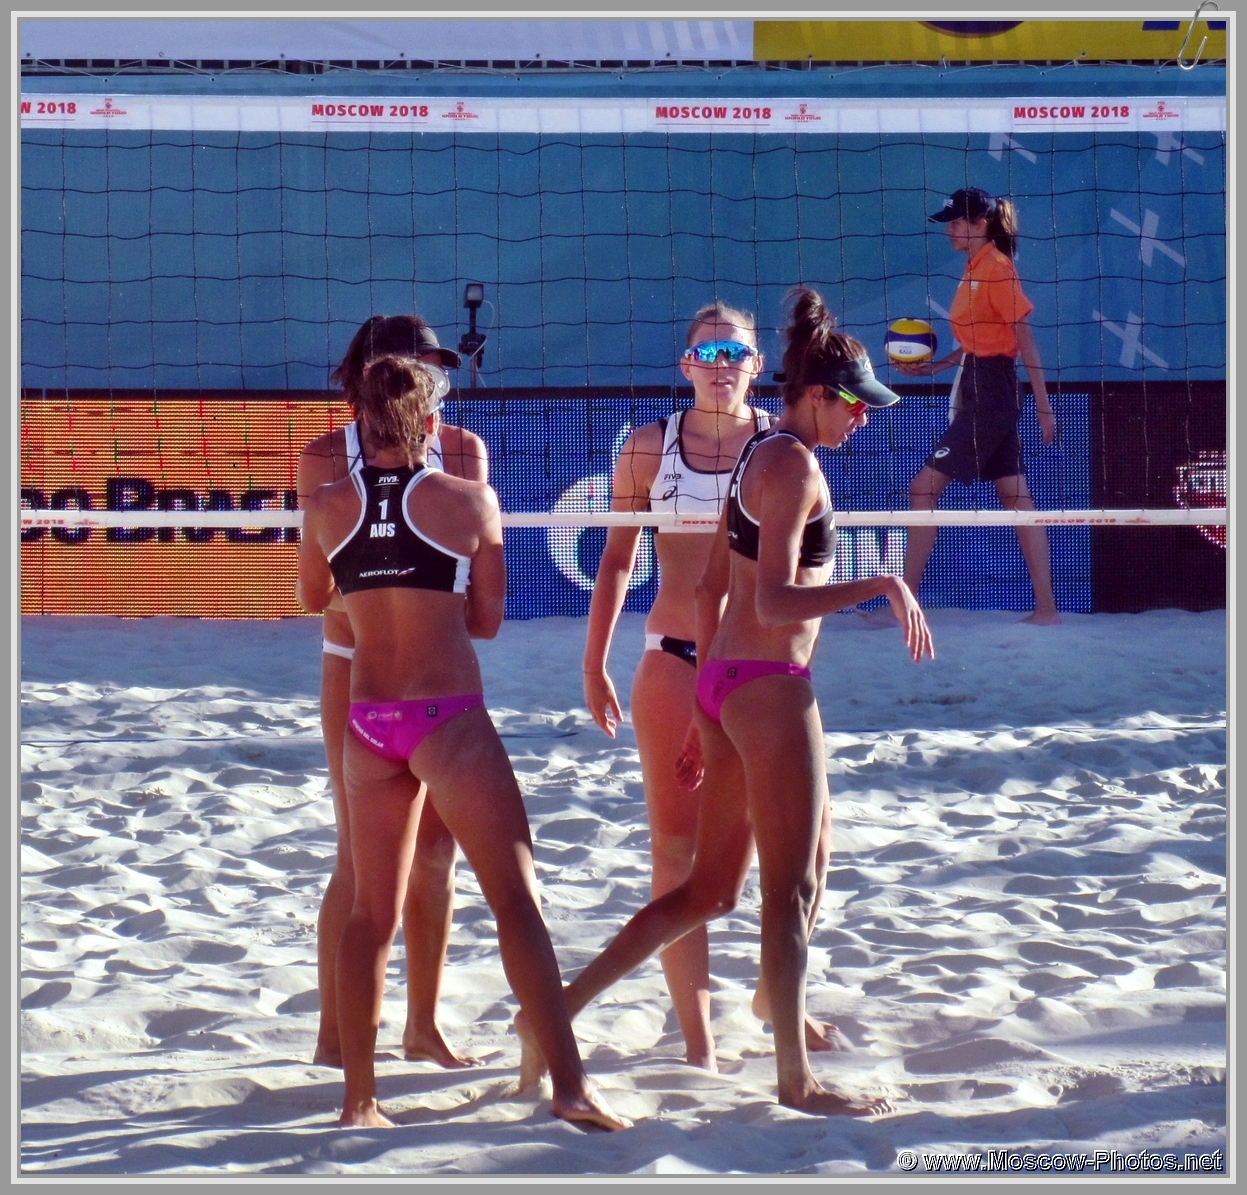 Taliqua Clancy and Mariafe Artacho del Solar - Australian Team at FIVB Beach Volleyball World Tour in Moscow 2018